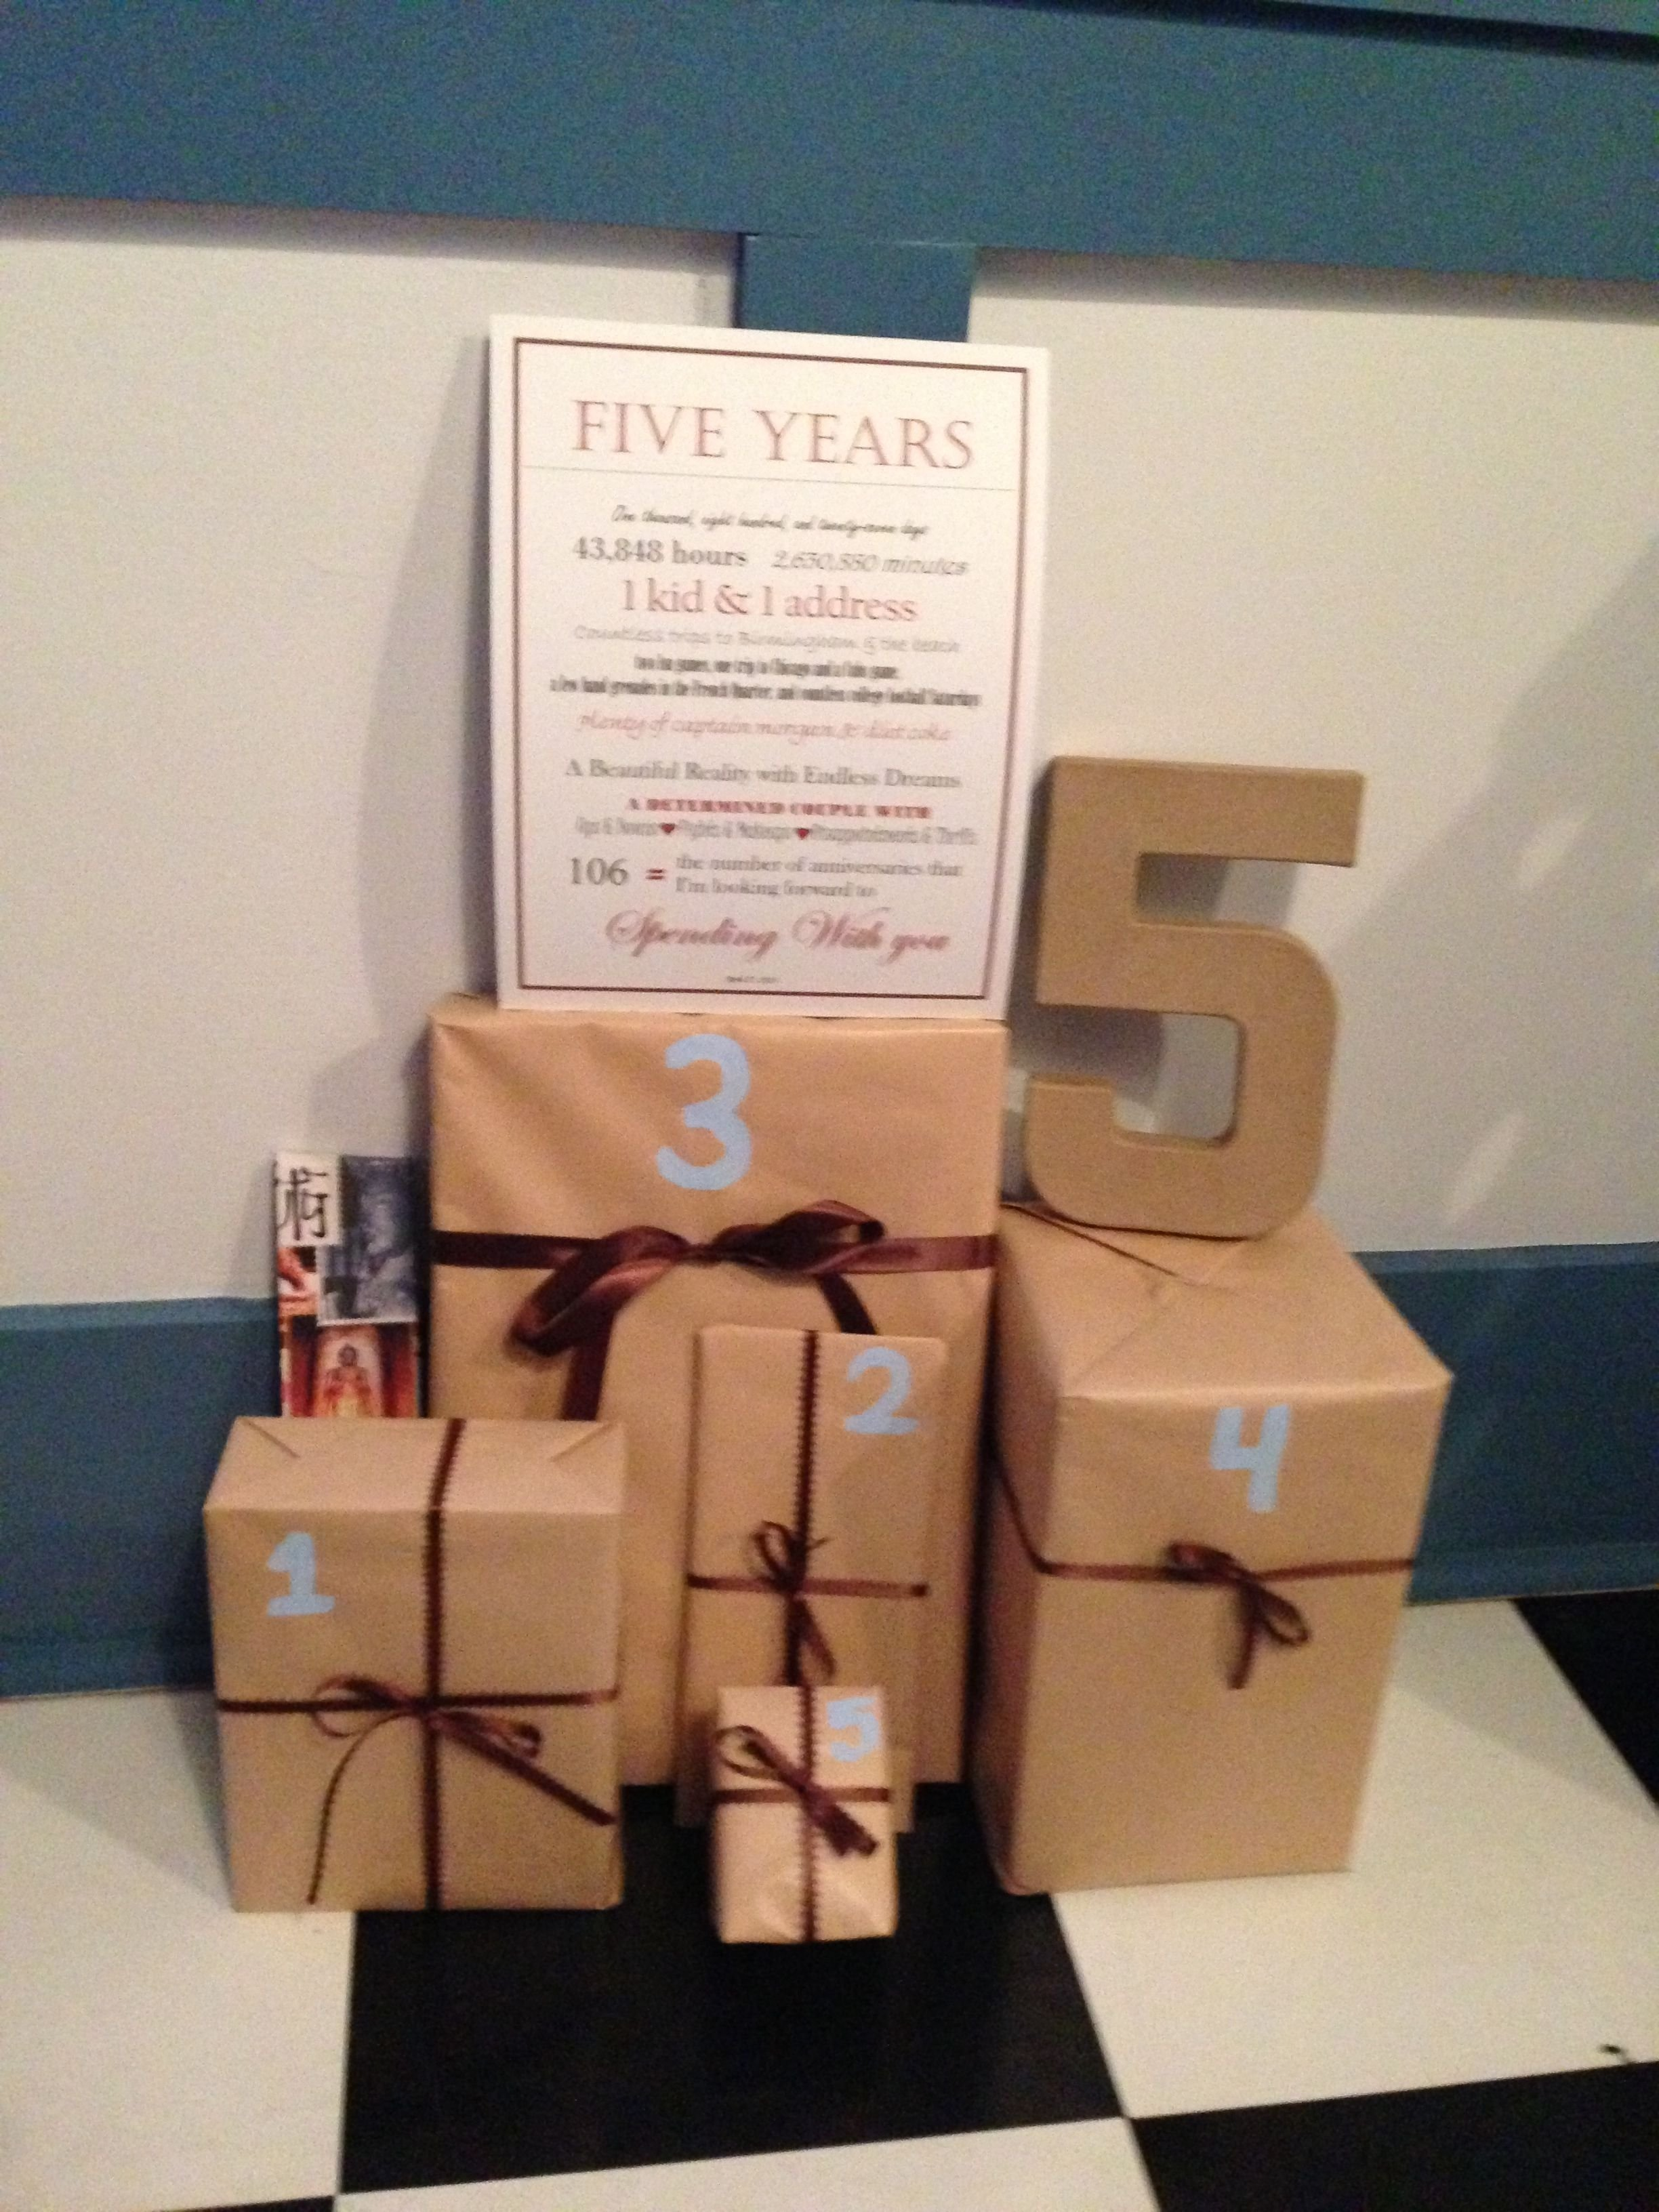 10 Lovely 5 Year Wedding Anniversary Gift Ideas For Him